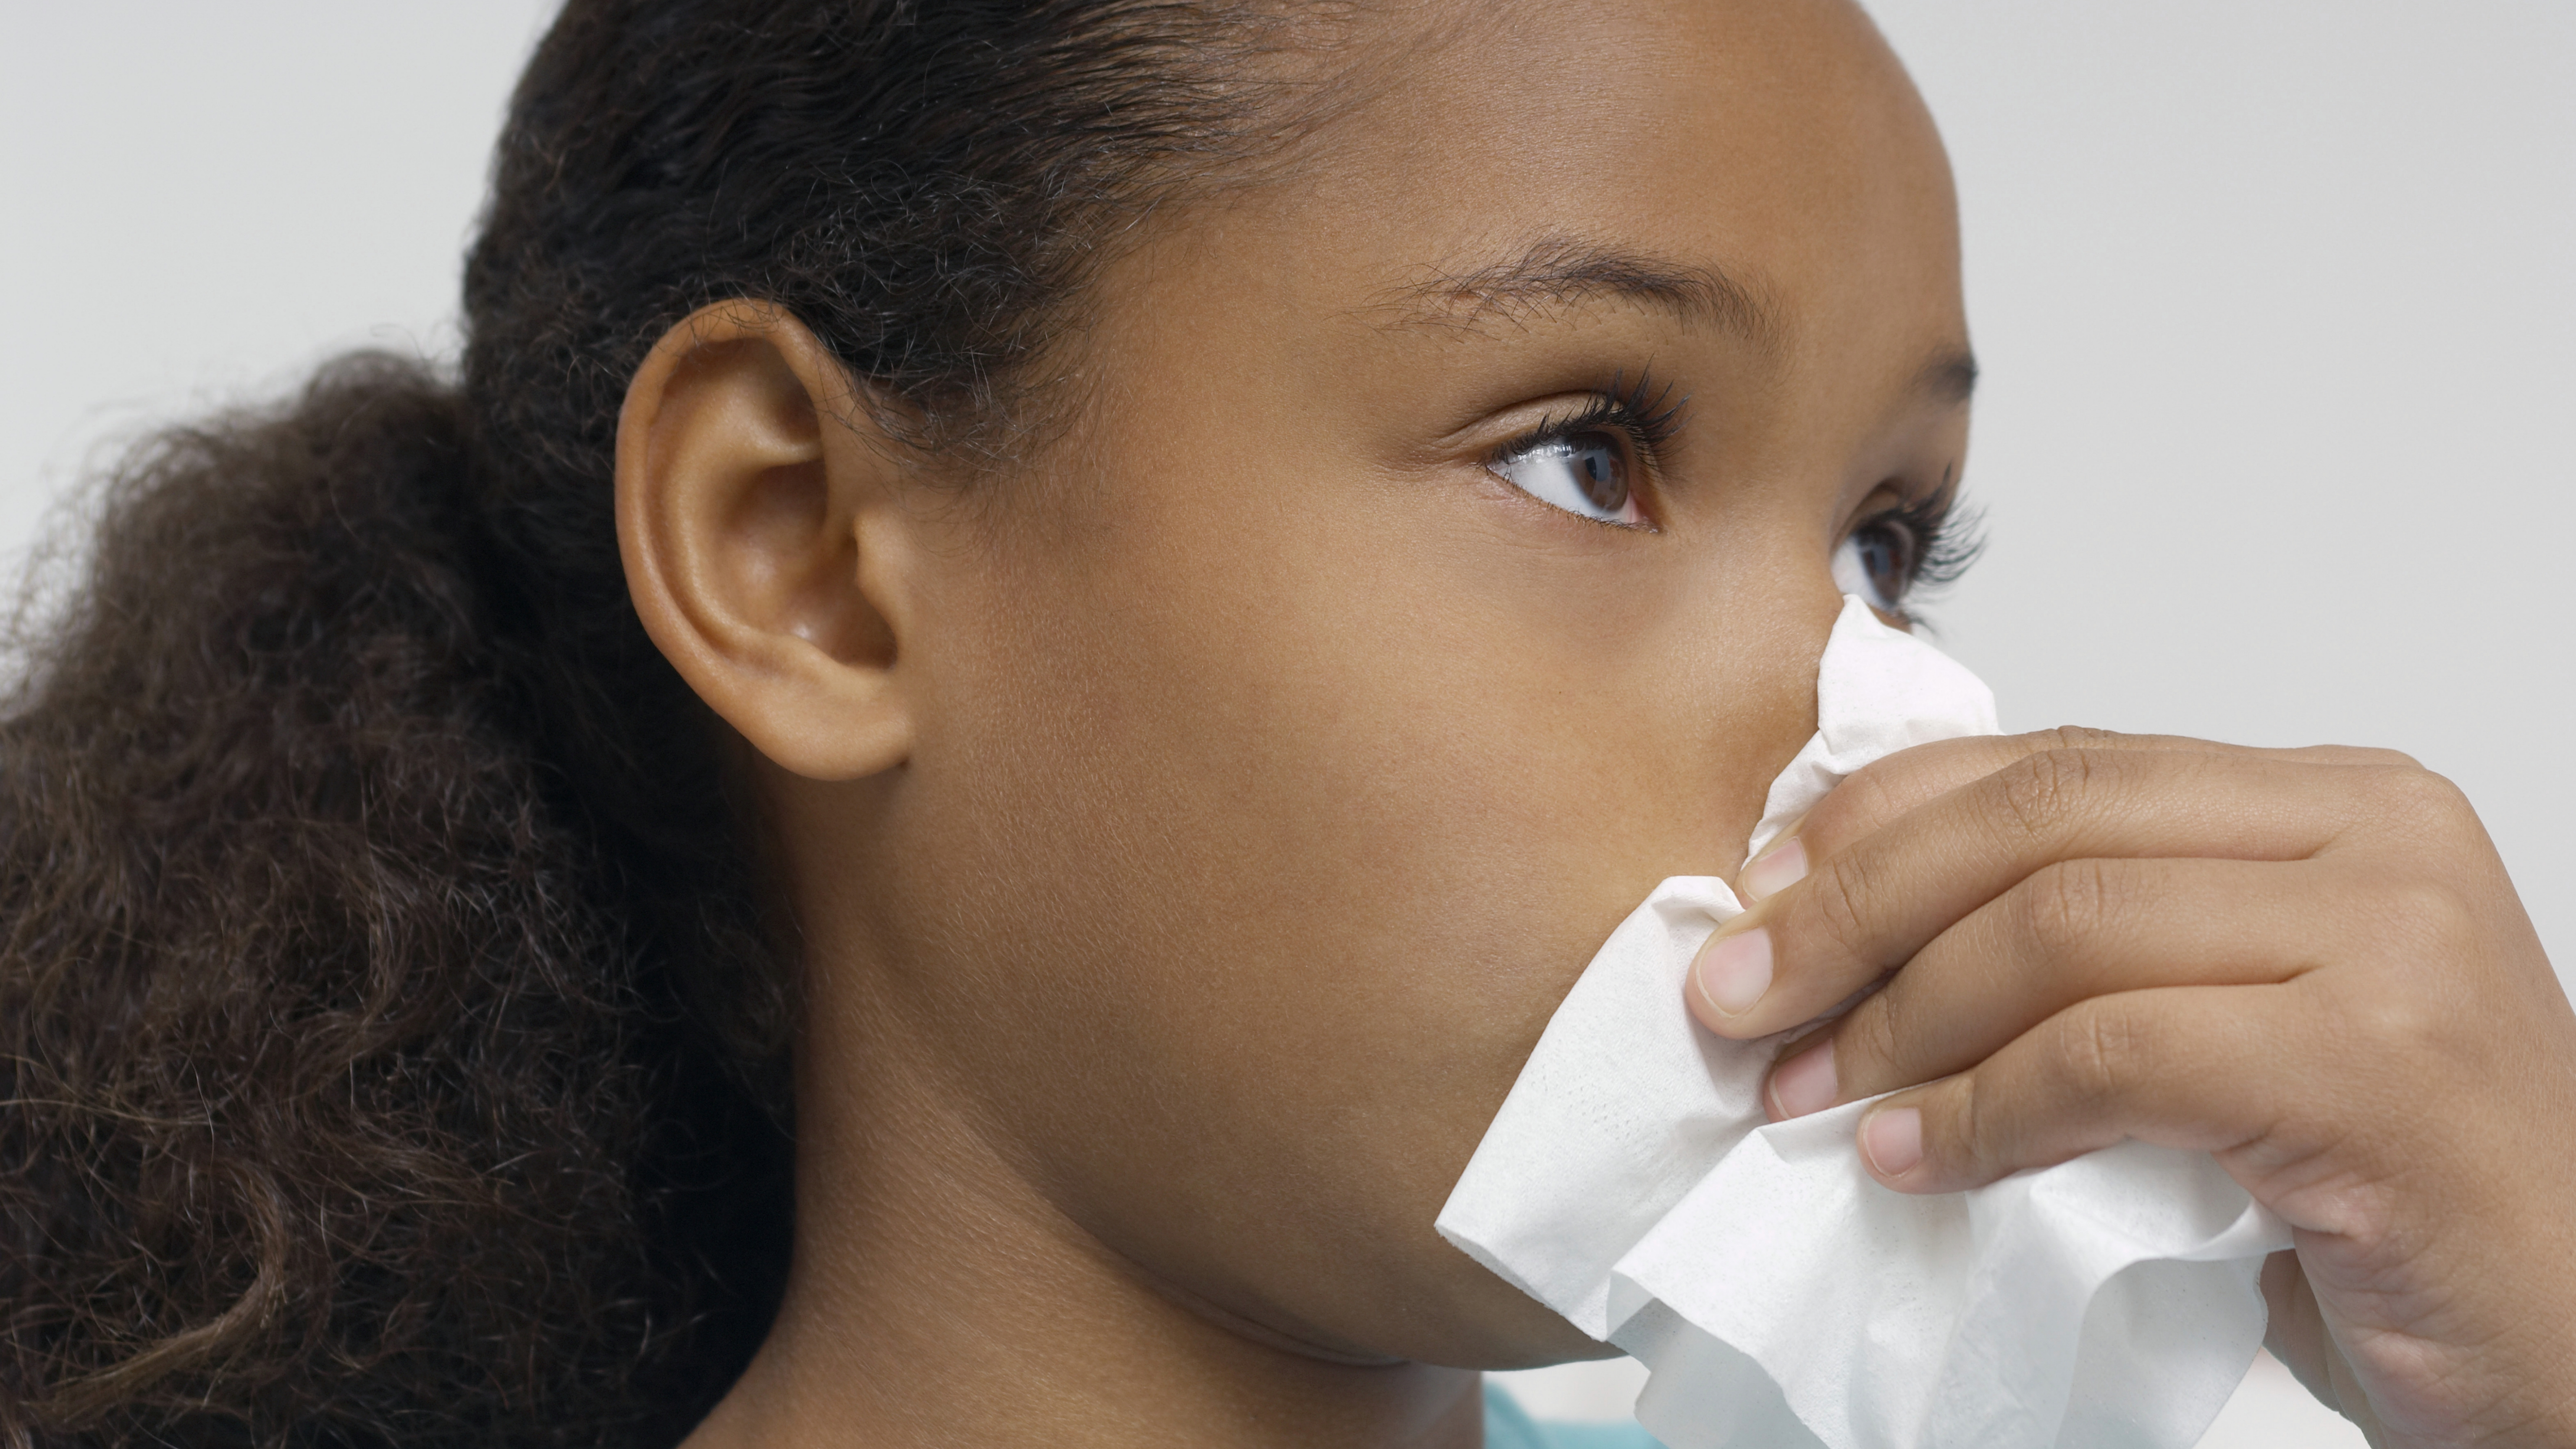 a young girl blowing her nose, perhaps sick with a cold or allergies